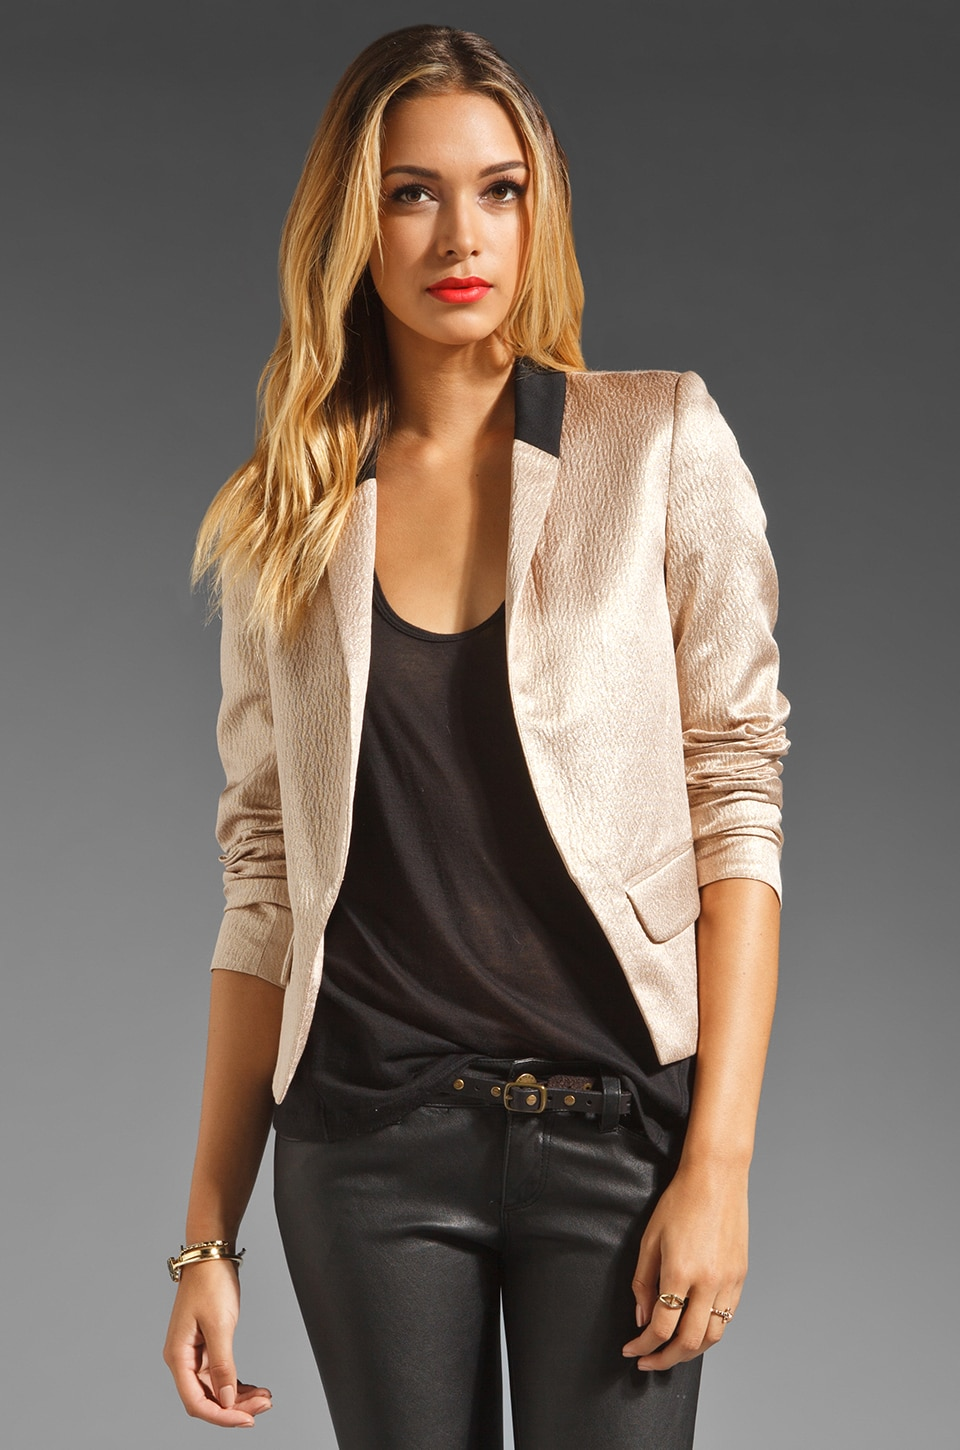 DEREK LAM 10 CROSBY Metallic Shawl Collar Jacket in Nude